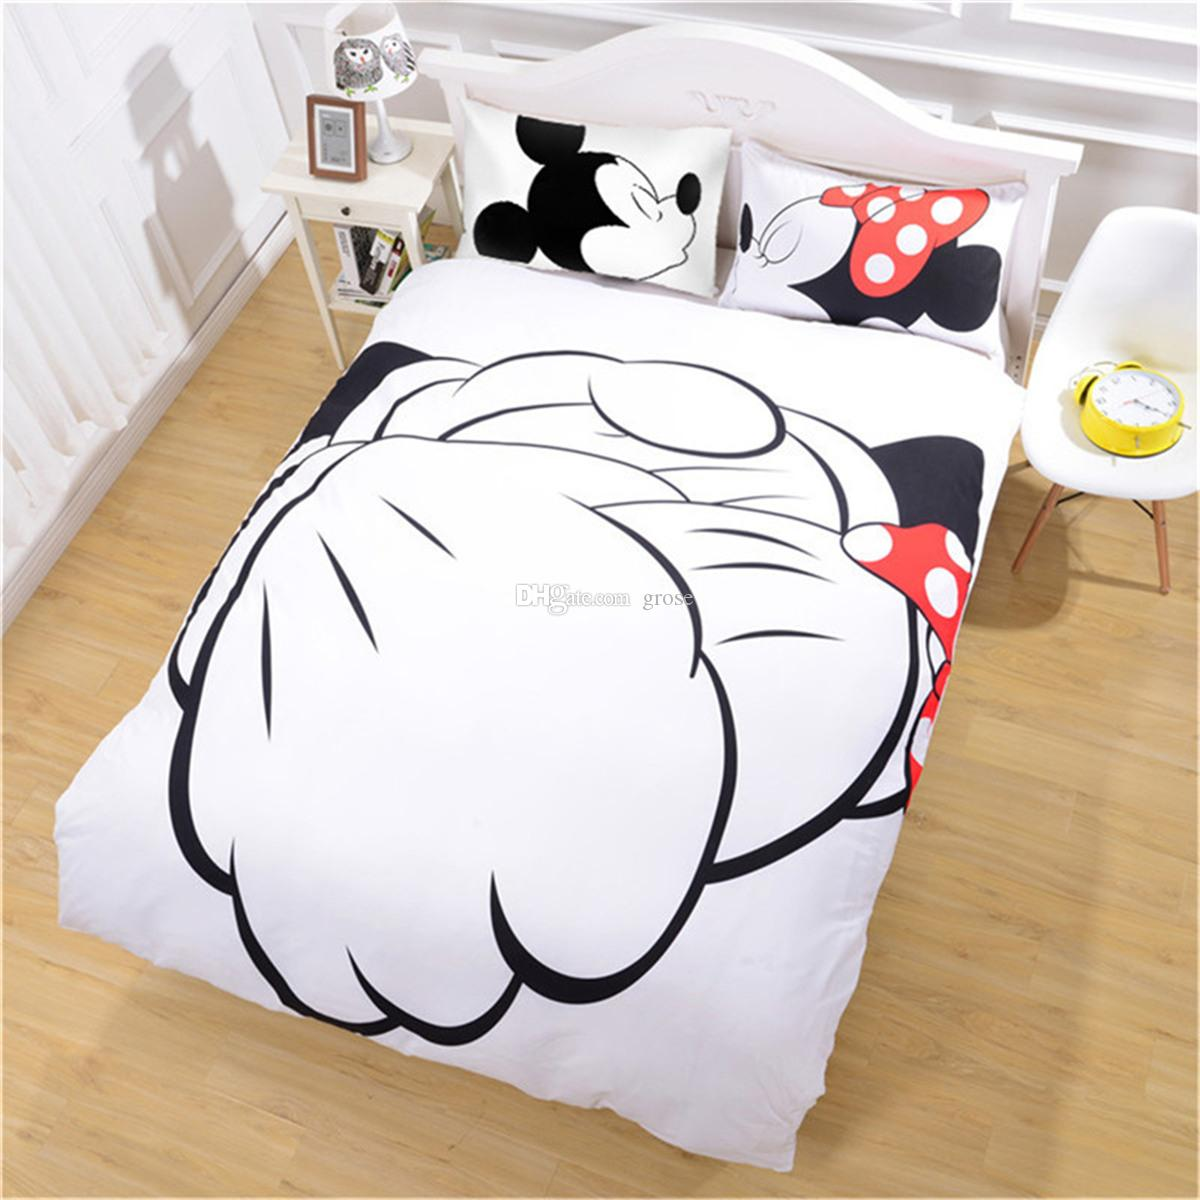 Mickey Mouse Bedding Set Cartoon Kids Favorite Home Textiles Plain Printed Stylish Bedclothes Single Double Queen Size 0711032